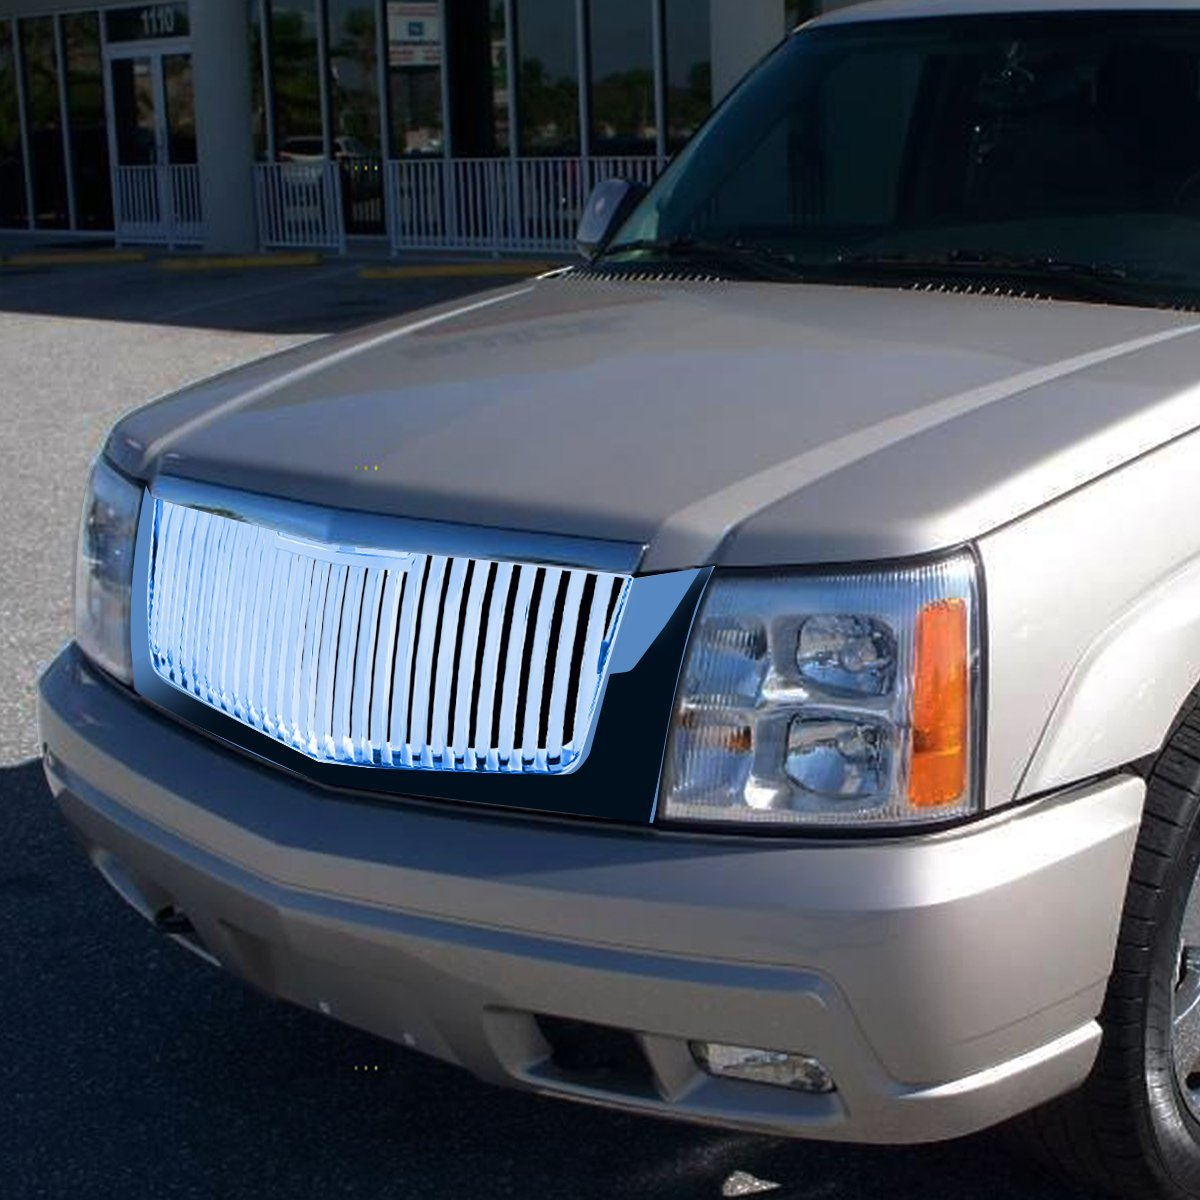 2002 2006 Cadillac Escalade Vertical Style Front Grille Grill Chrome Ext Wiring Harness